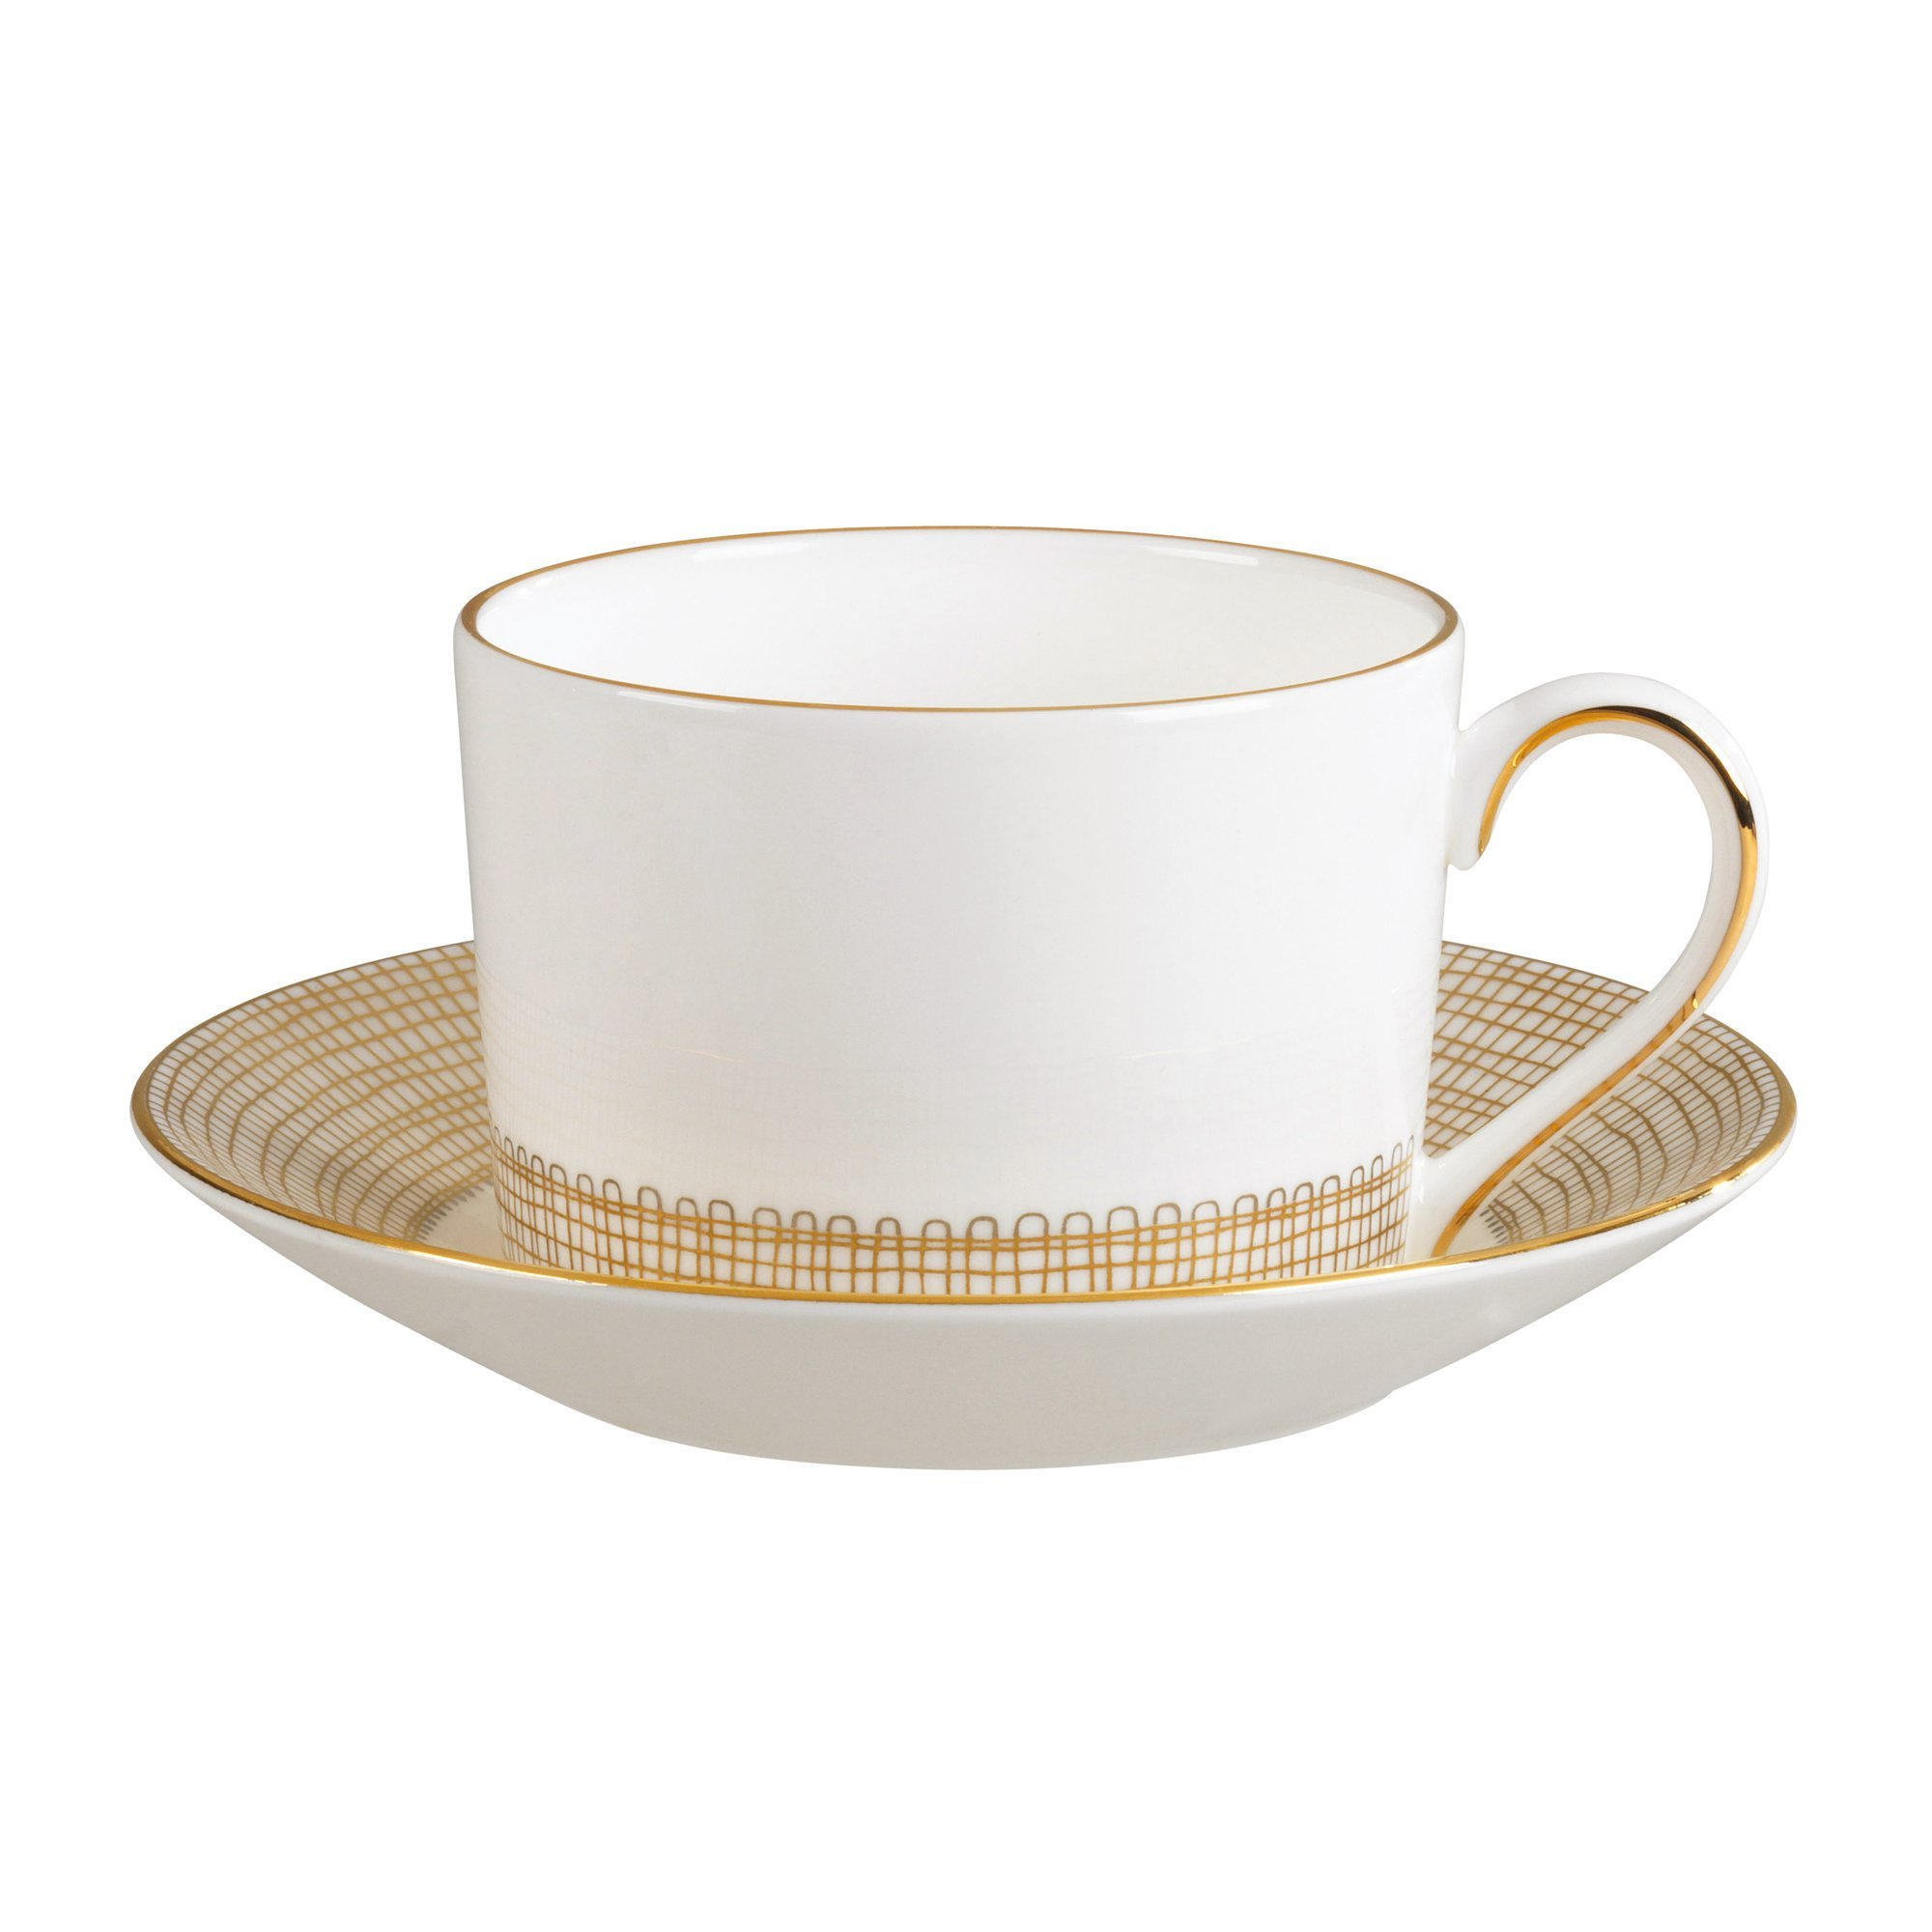 Wedgwood Gilded Weave Rim Soup Plate, 9'', White